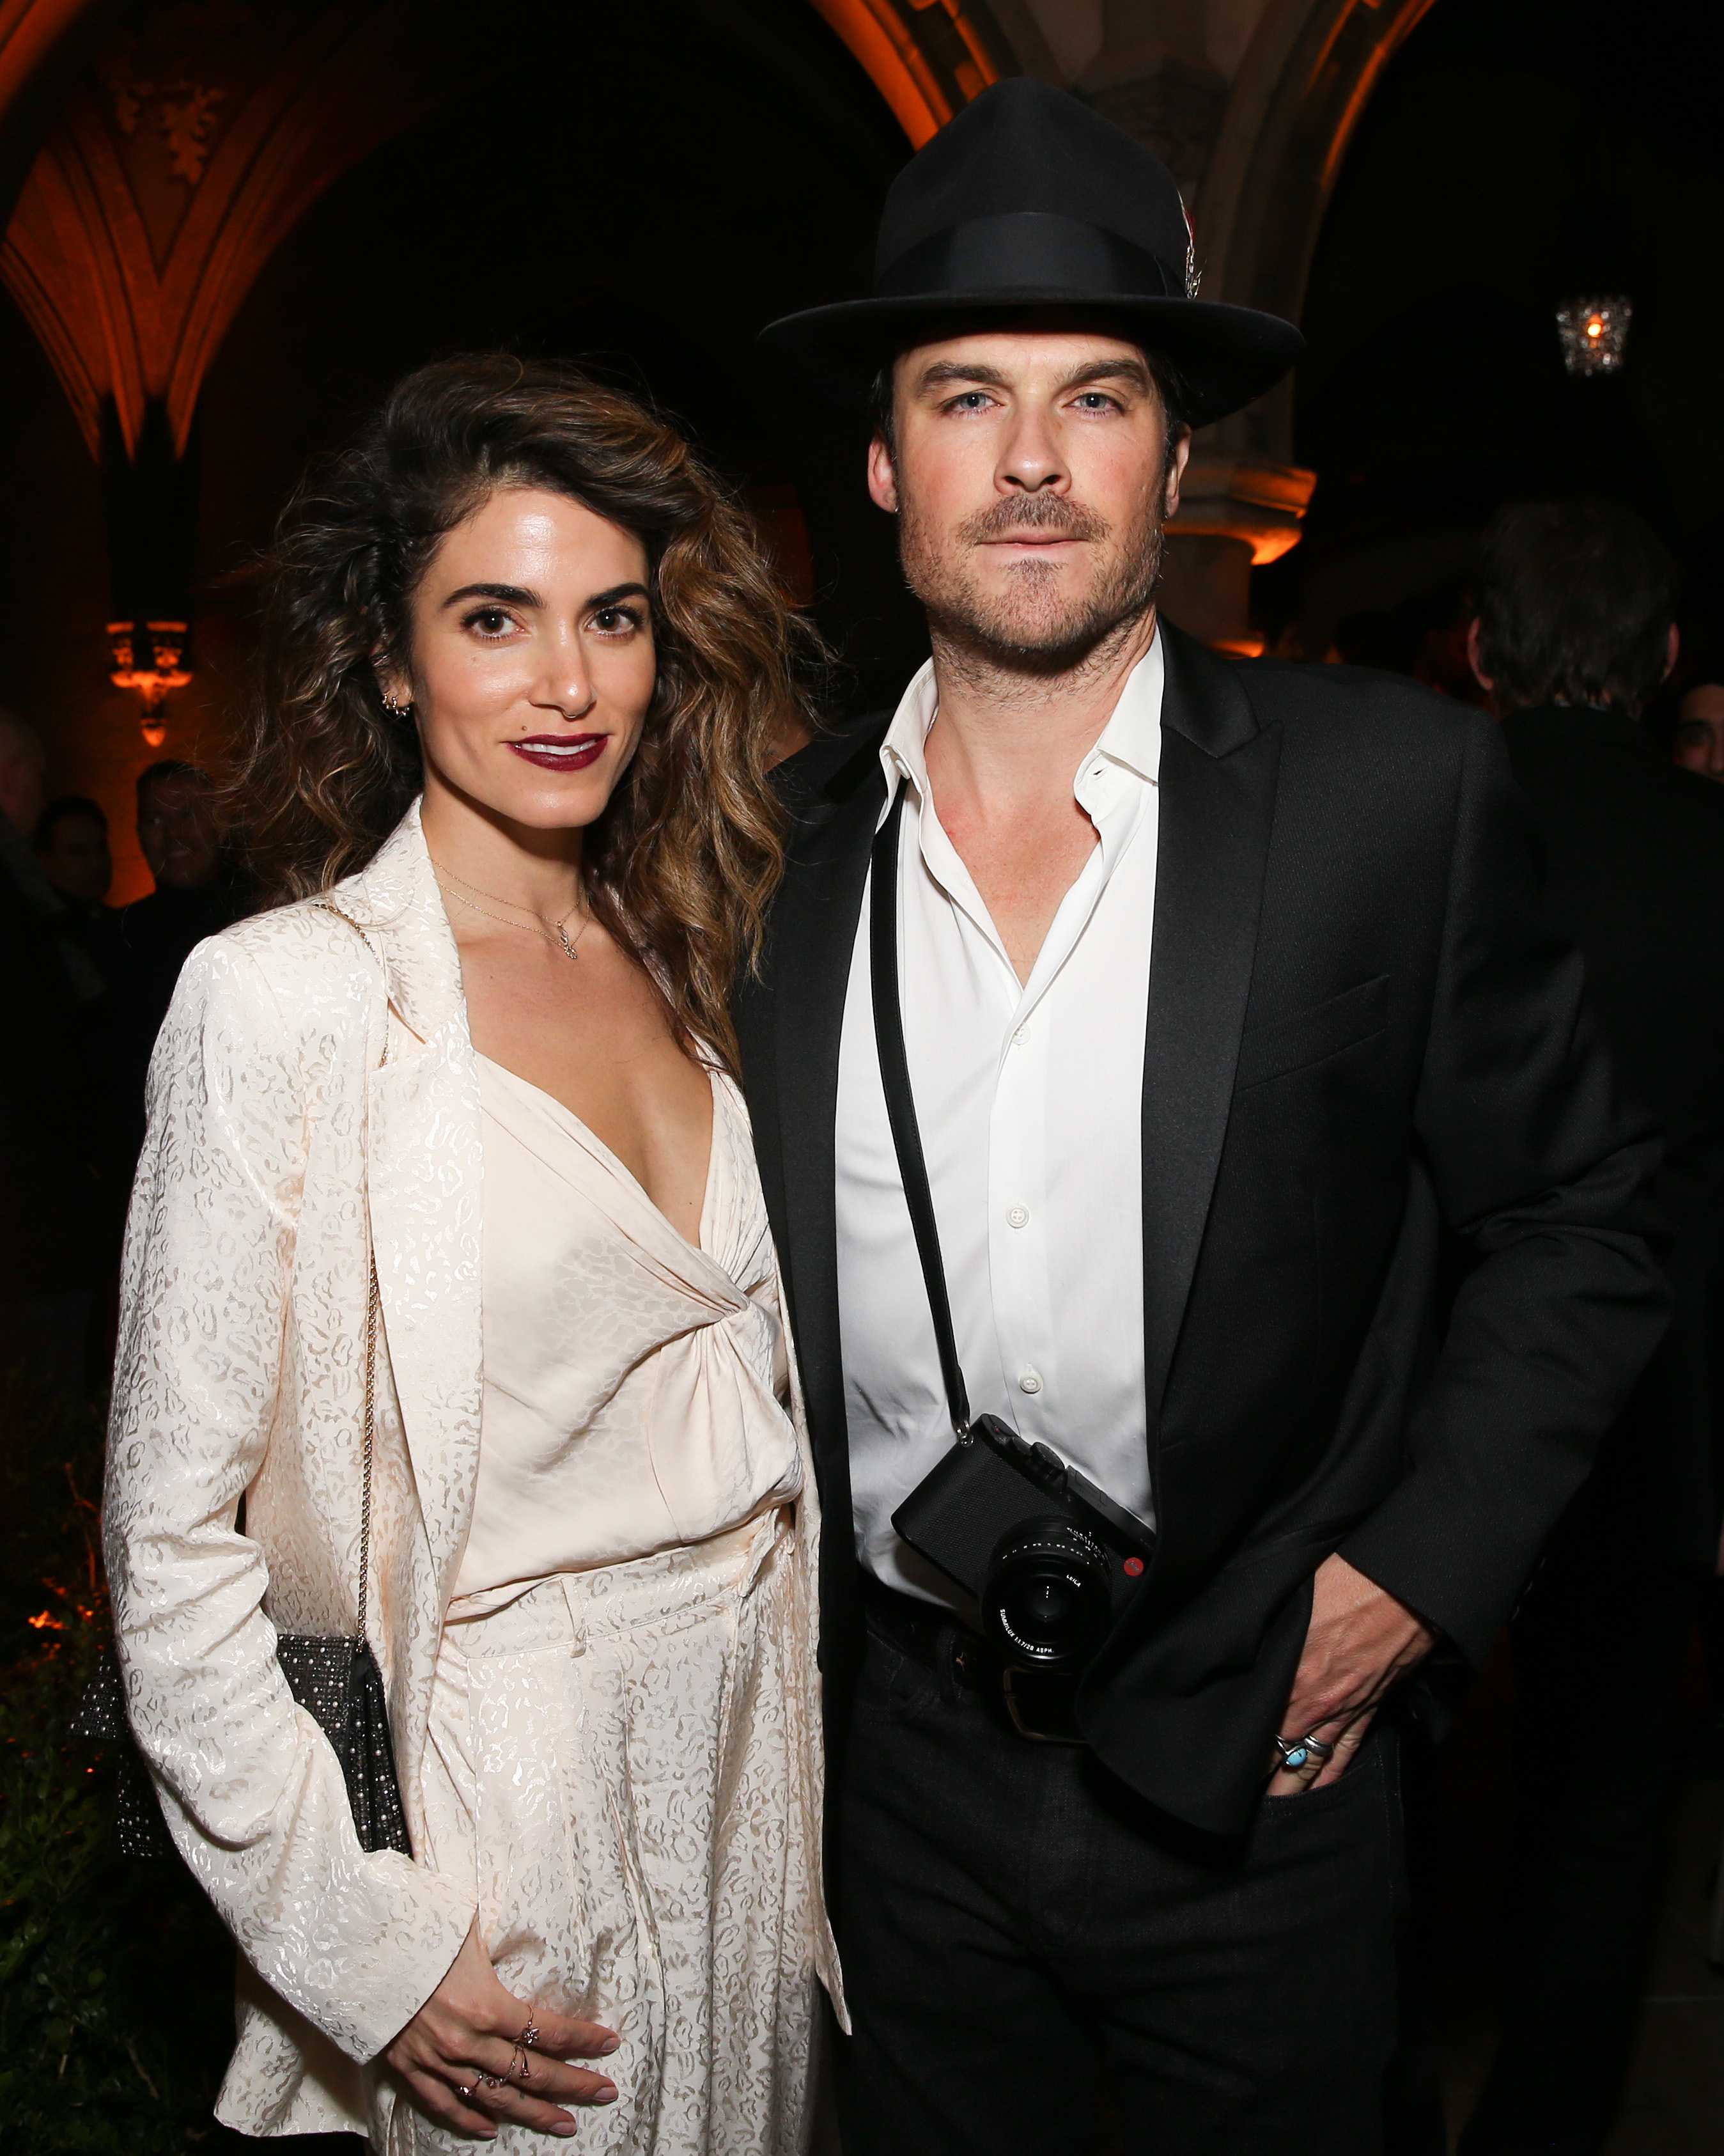 Nikki Reed and Ian Somerhalder attend the Cadillac Oscar Party in Los Angeles on Feb. 21, 2019.